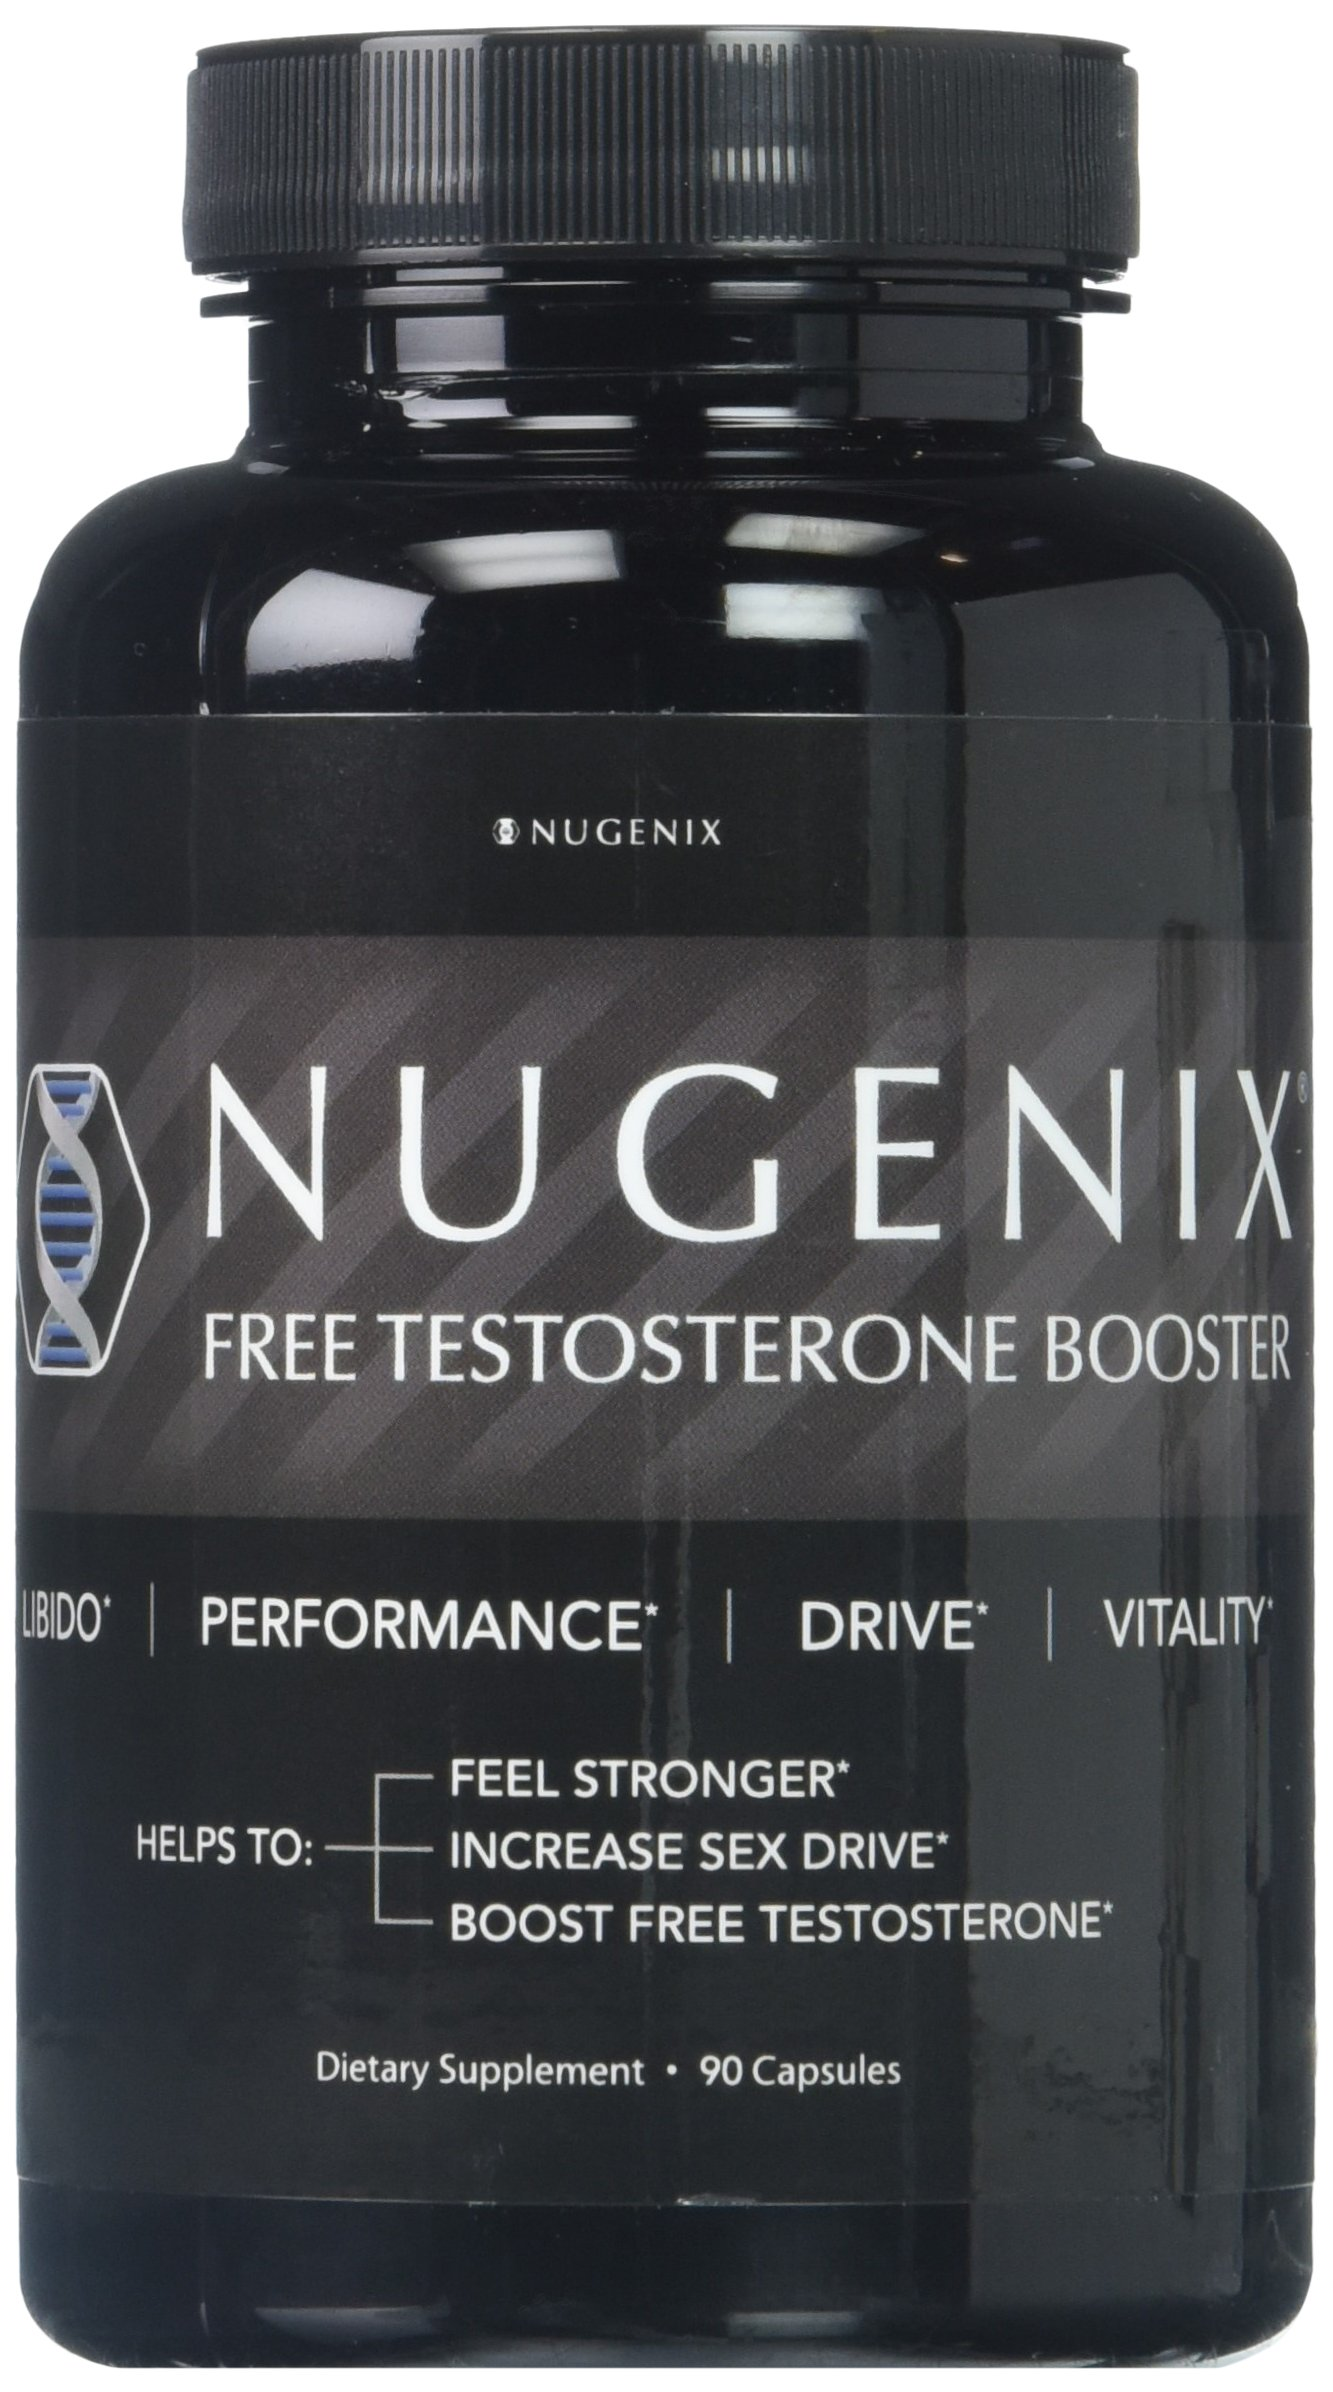 Nugenix Ultimate Testosterone Dietary Supplement 3 Count - Buy Online in UAE. Hpc Products in